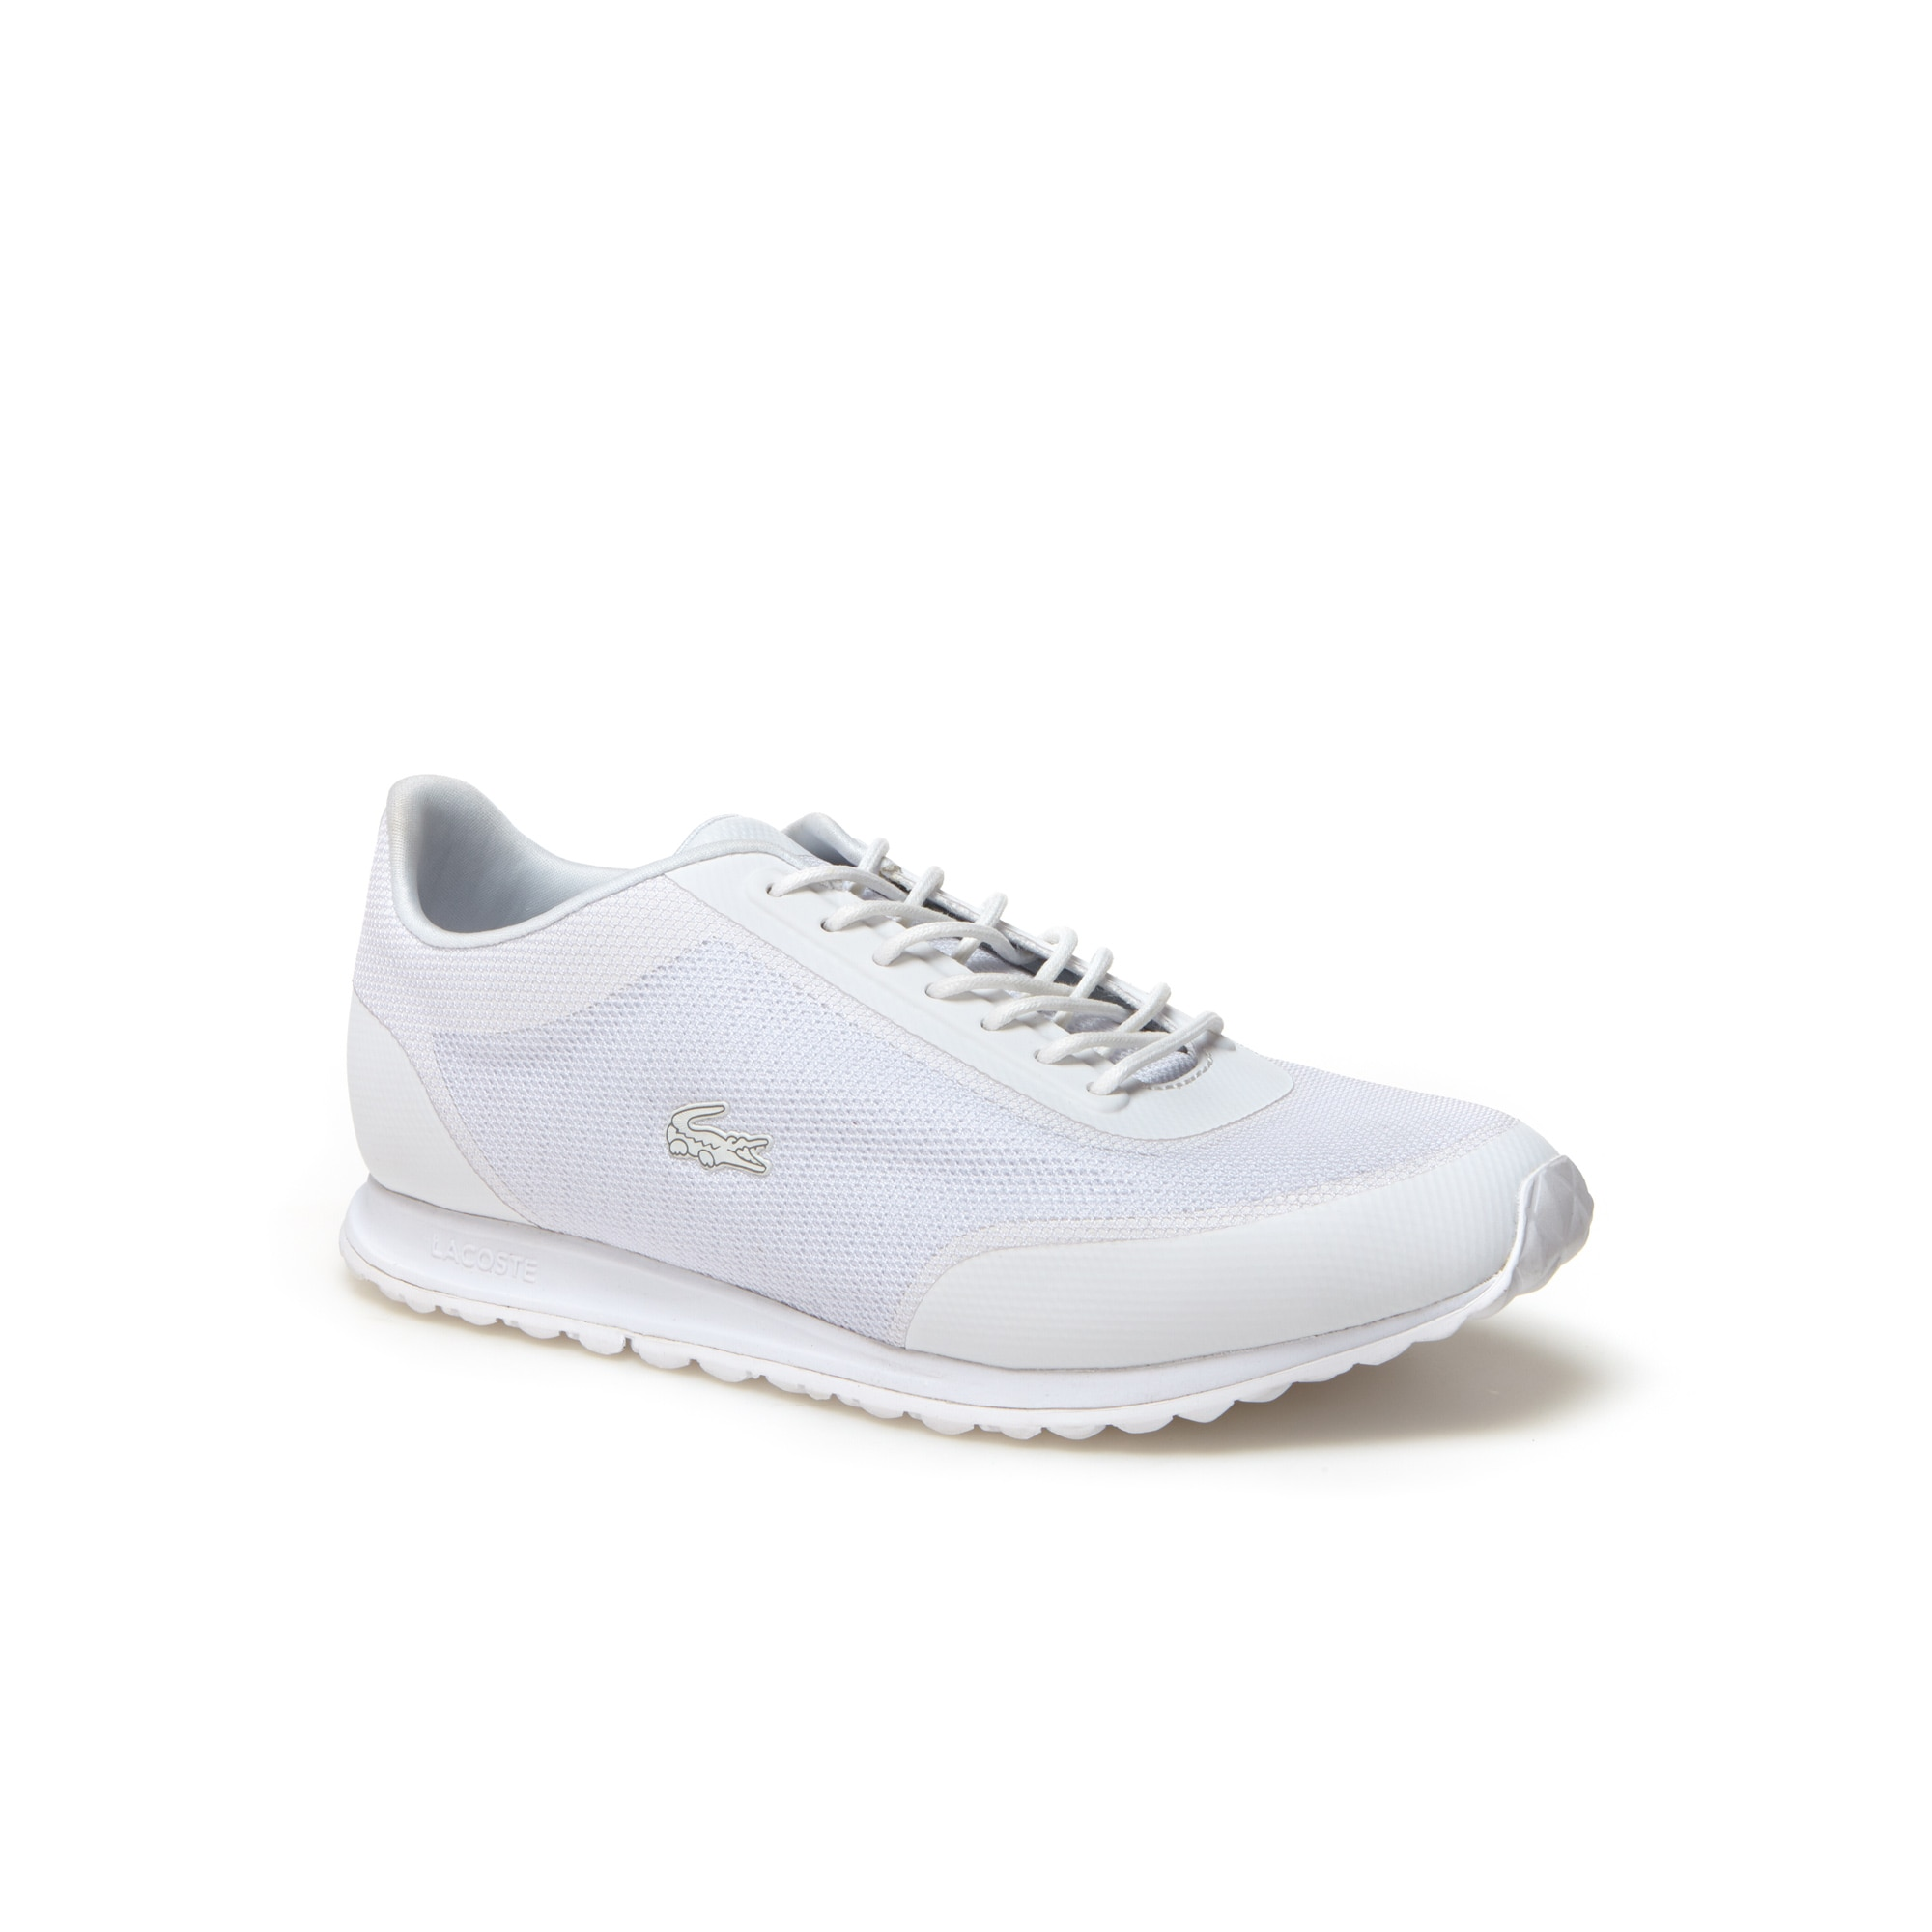 Helaine sneakers - White Lacoste